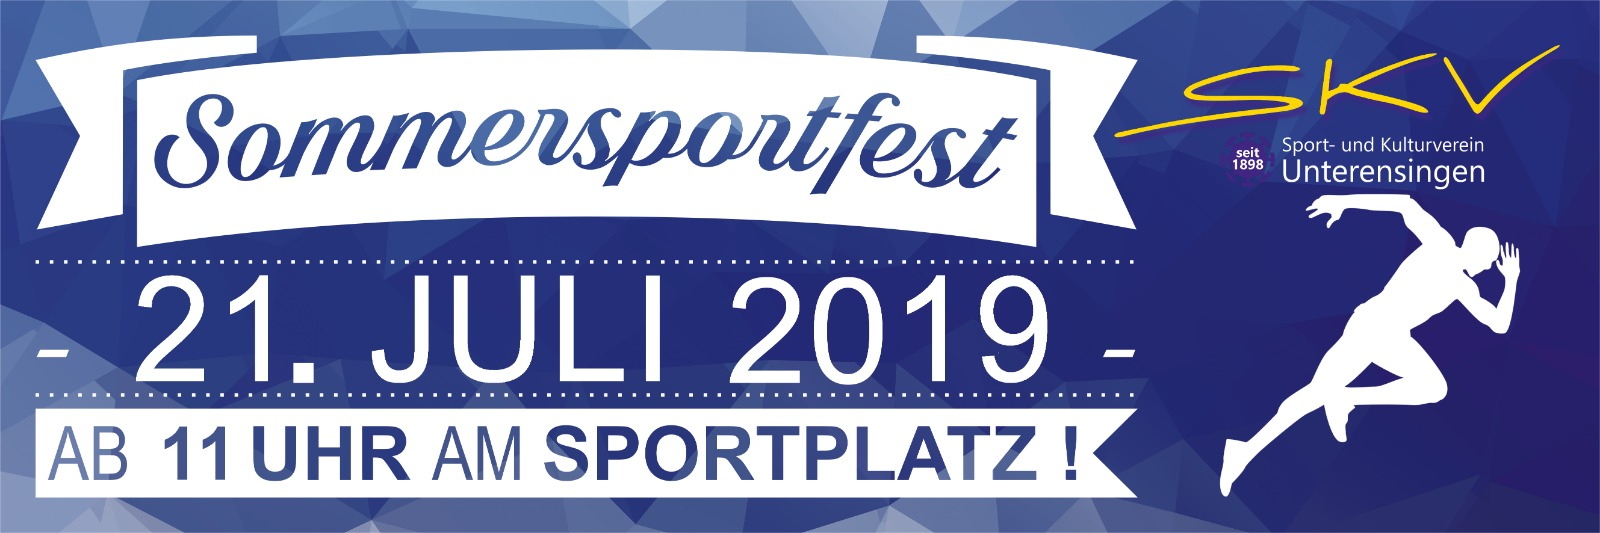 Sommersportfest_Low_res